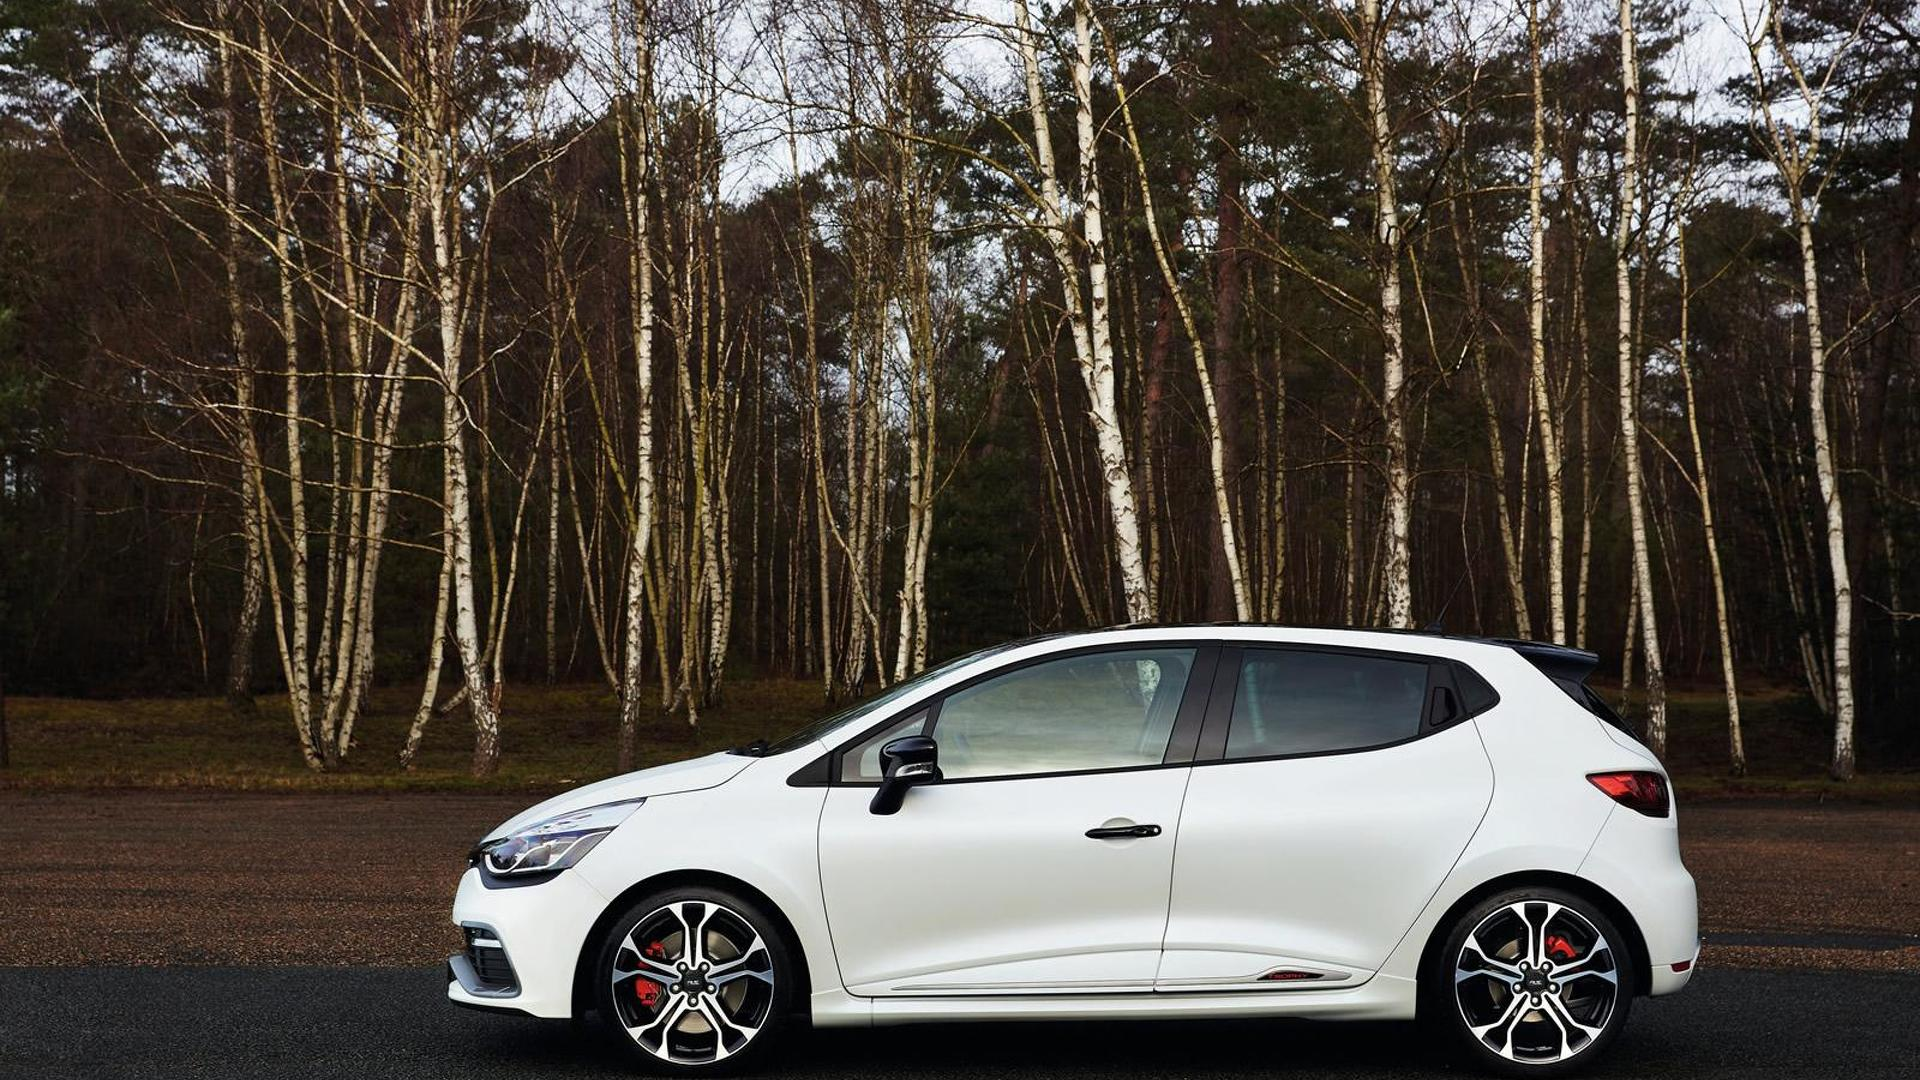 Clio Renaultsport 220 Trophy EDC priced from £21,780